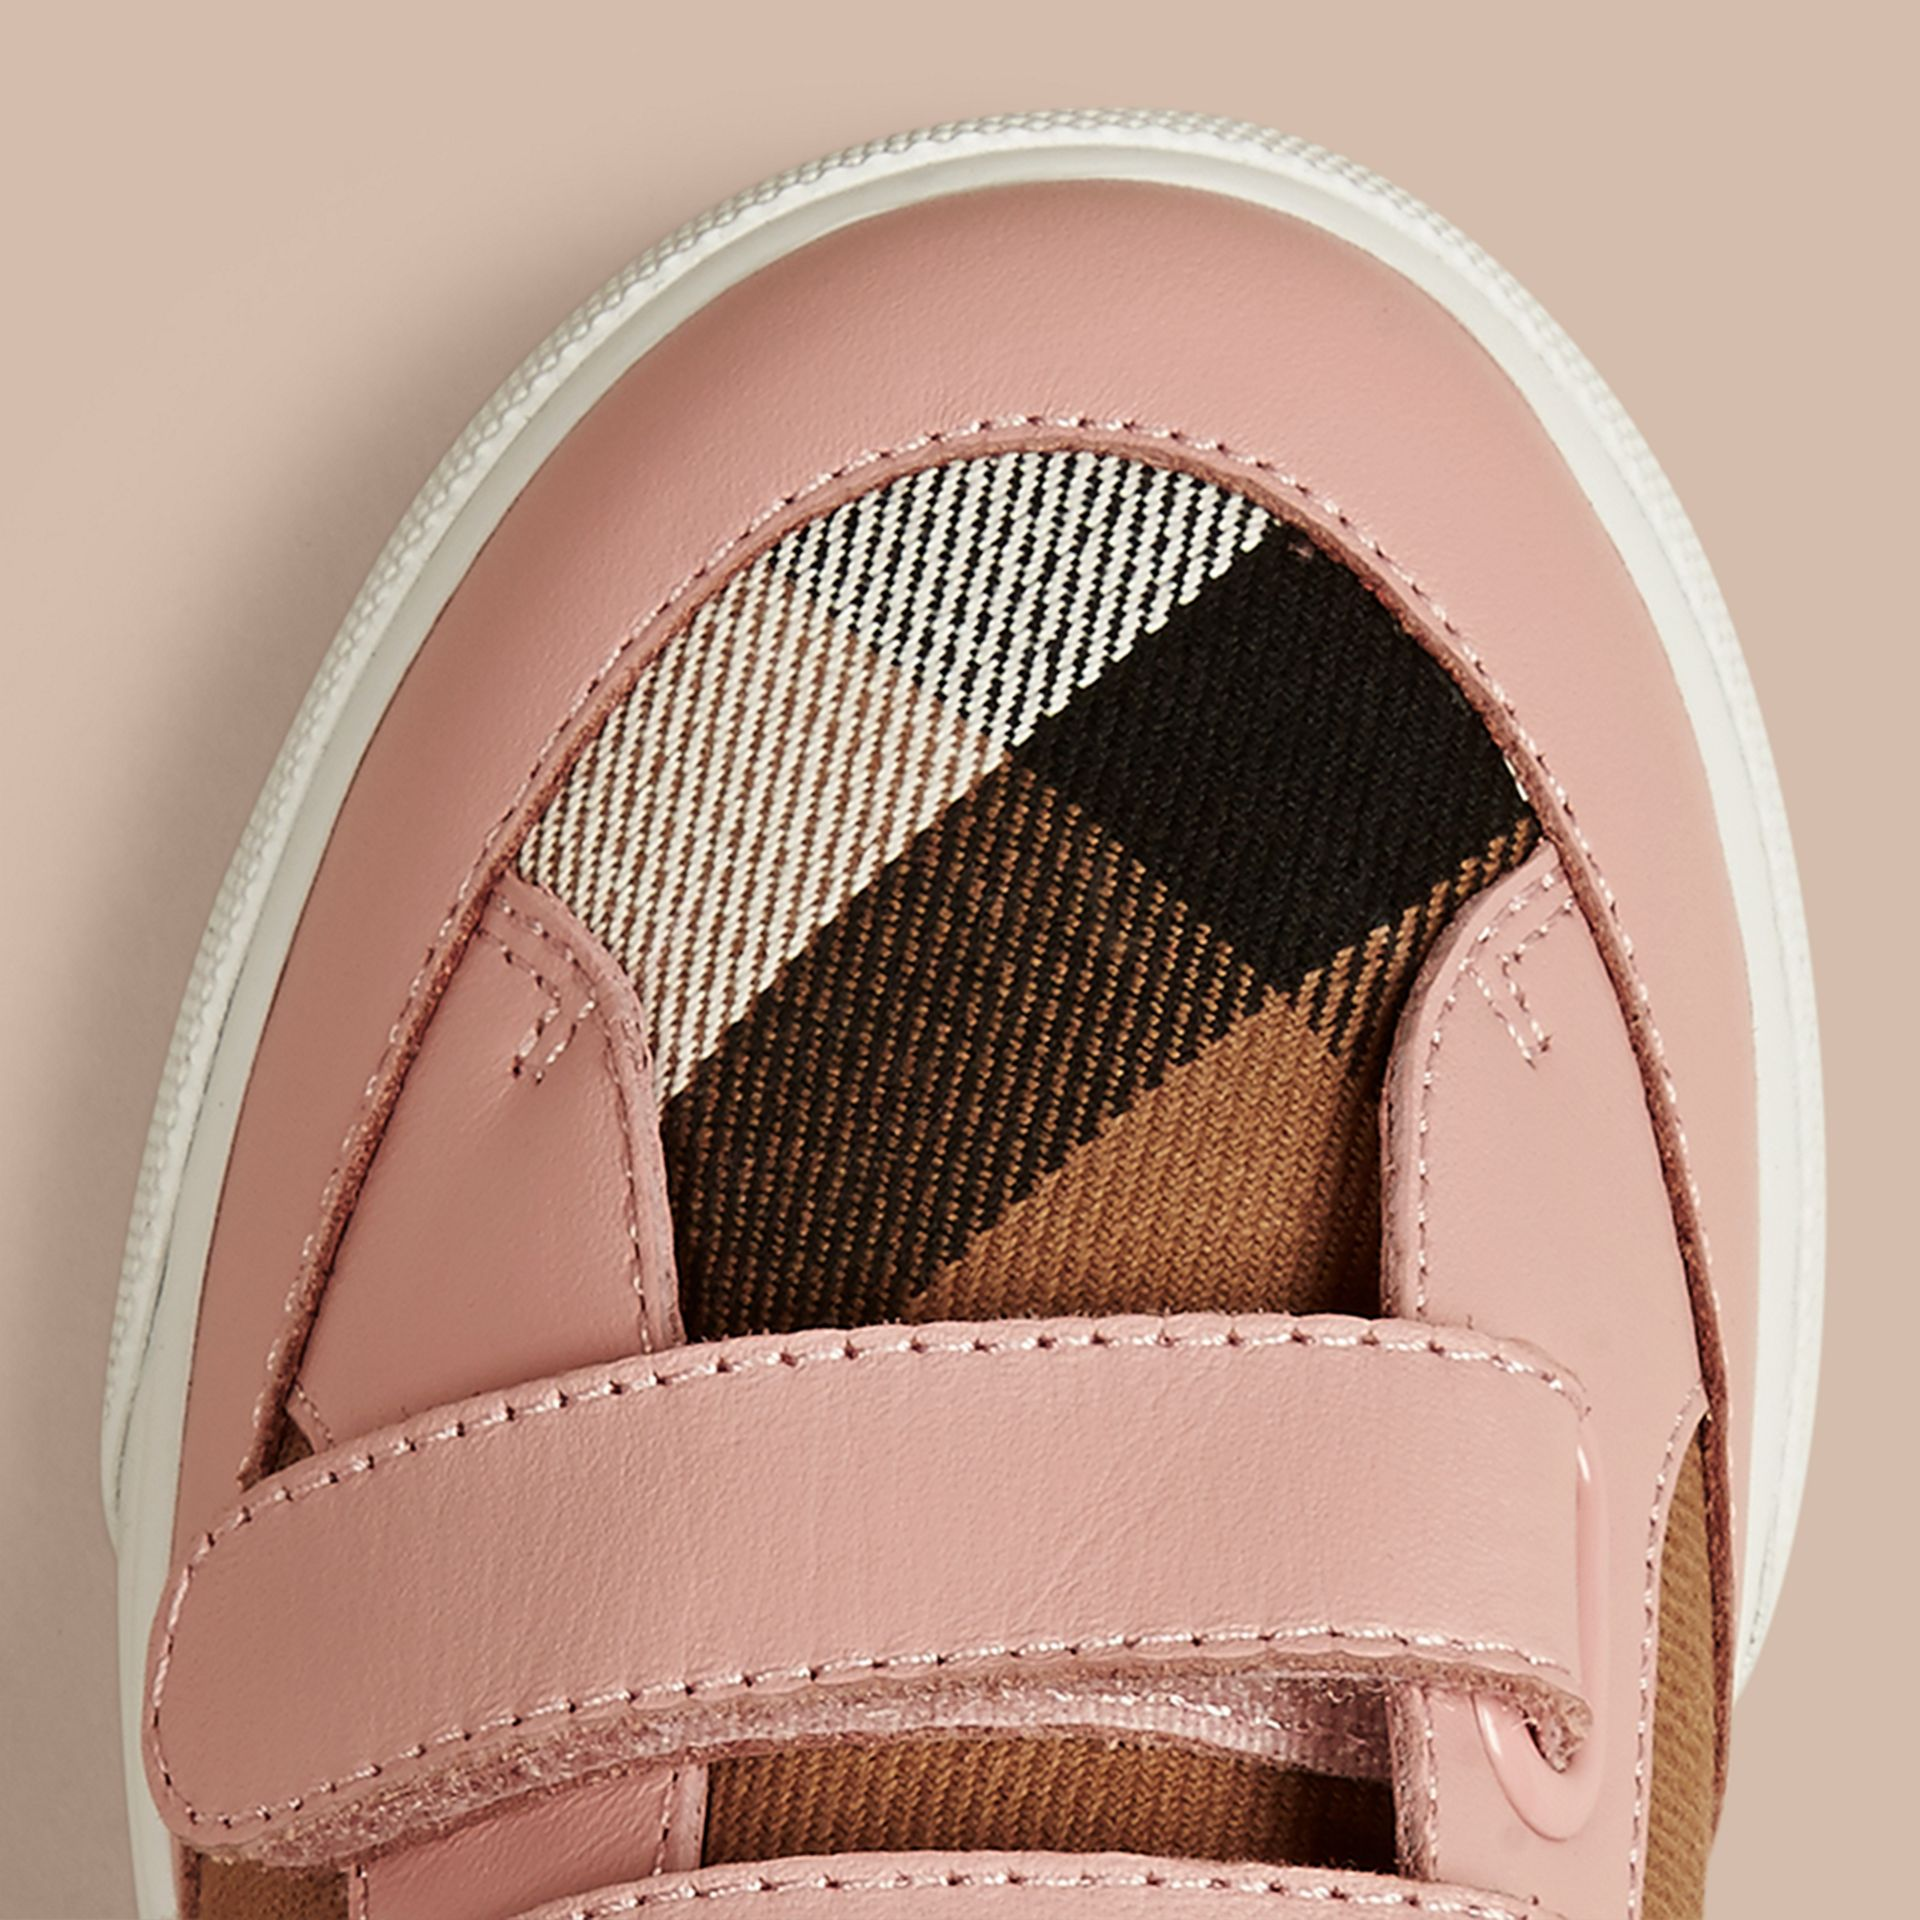 Nude blush House Check and Leather Trainers Nude Blush - gallery image 4